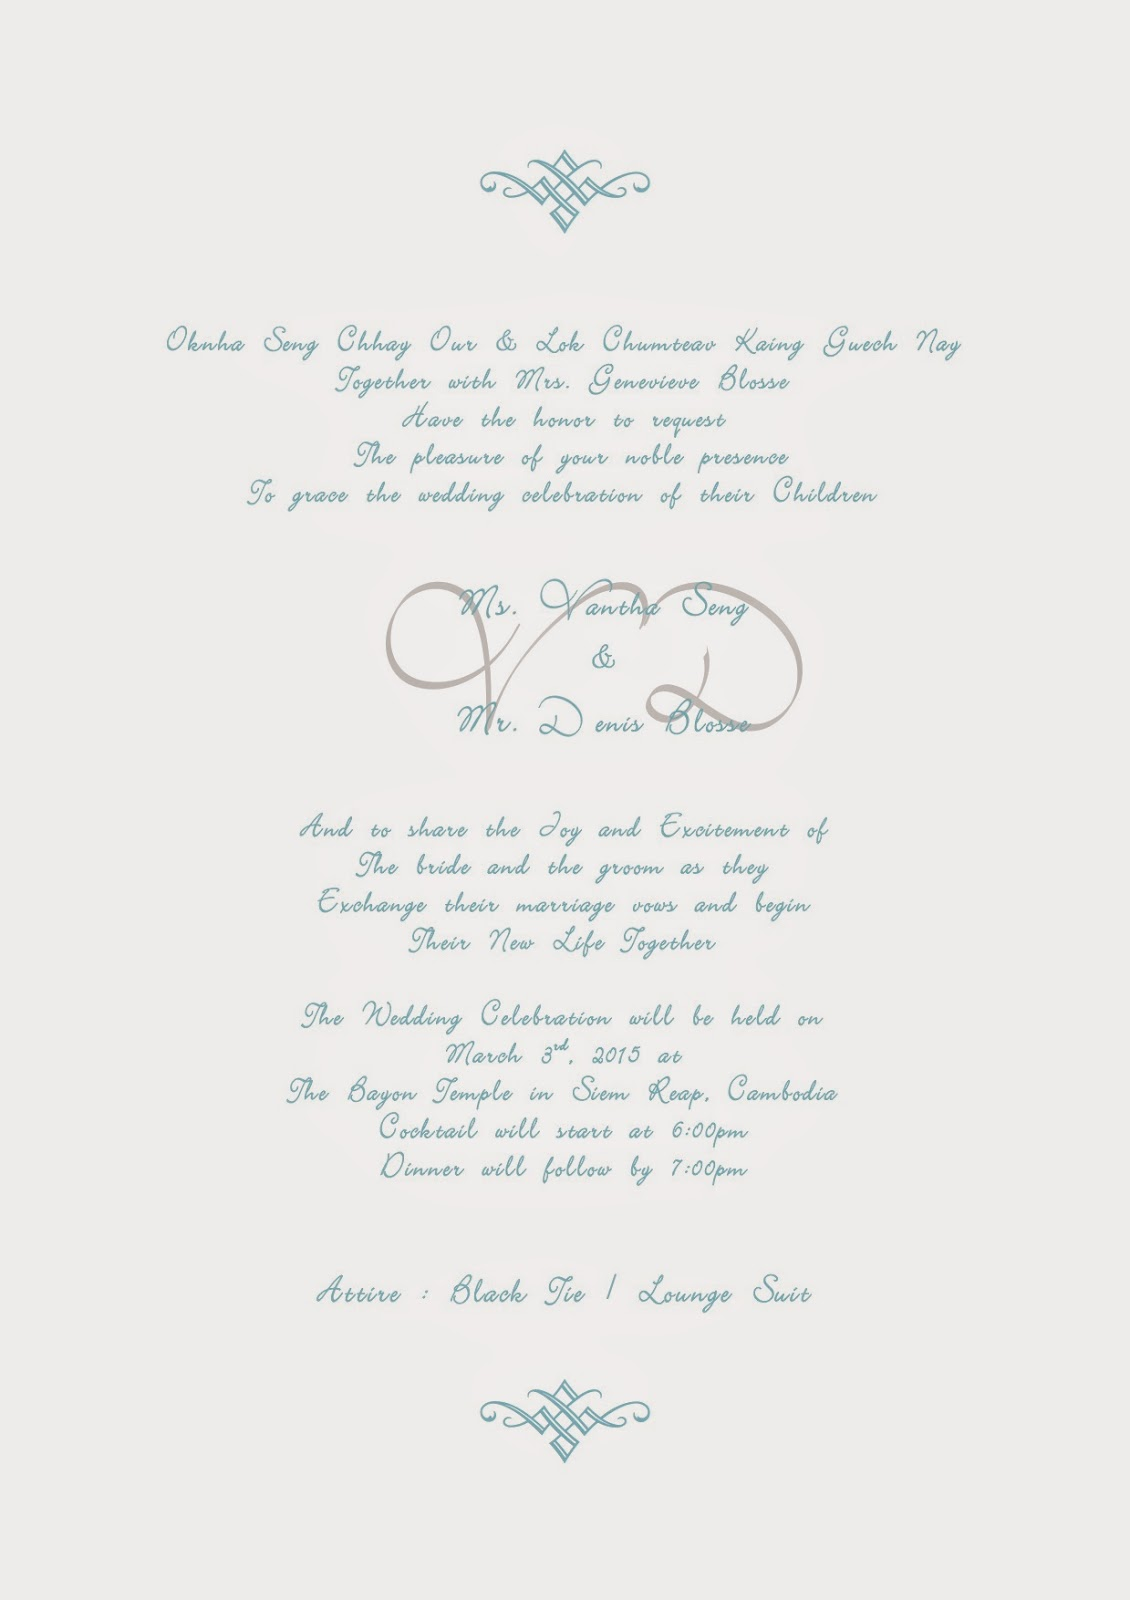 Vantha & Denis Wedding: Dear Friends and Family, You Are Cordially ...